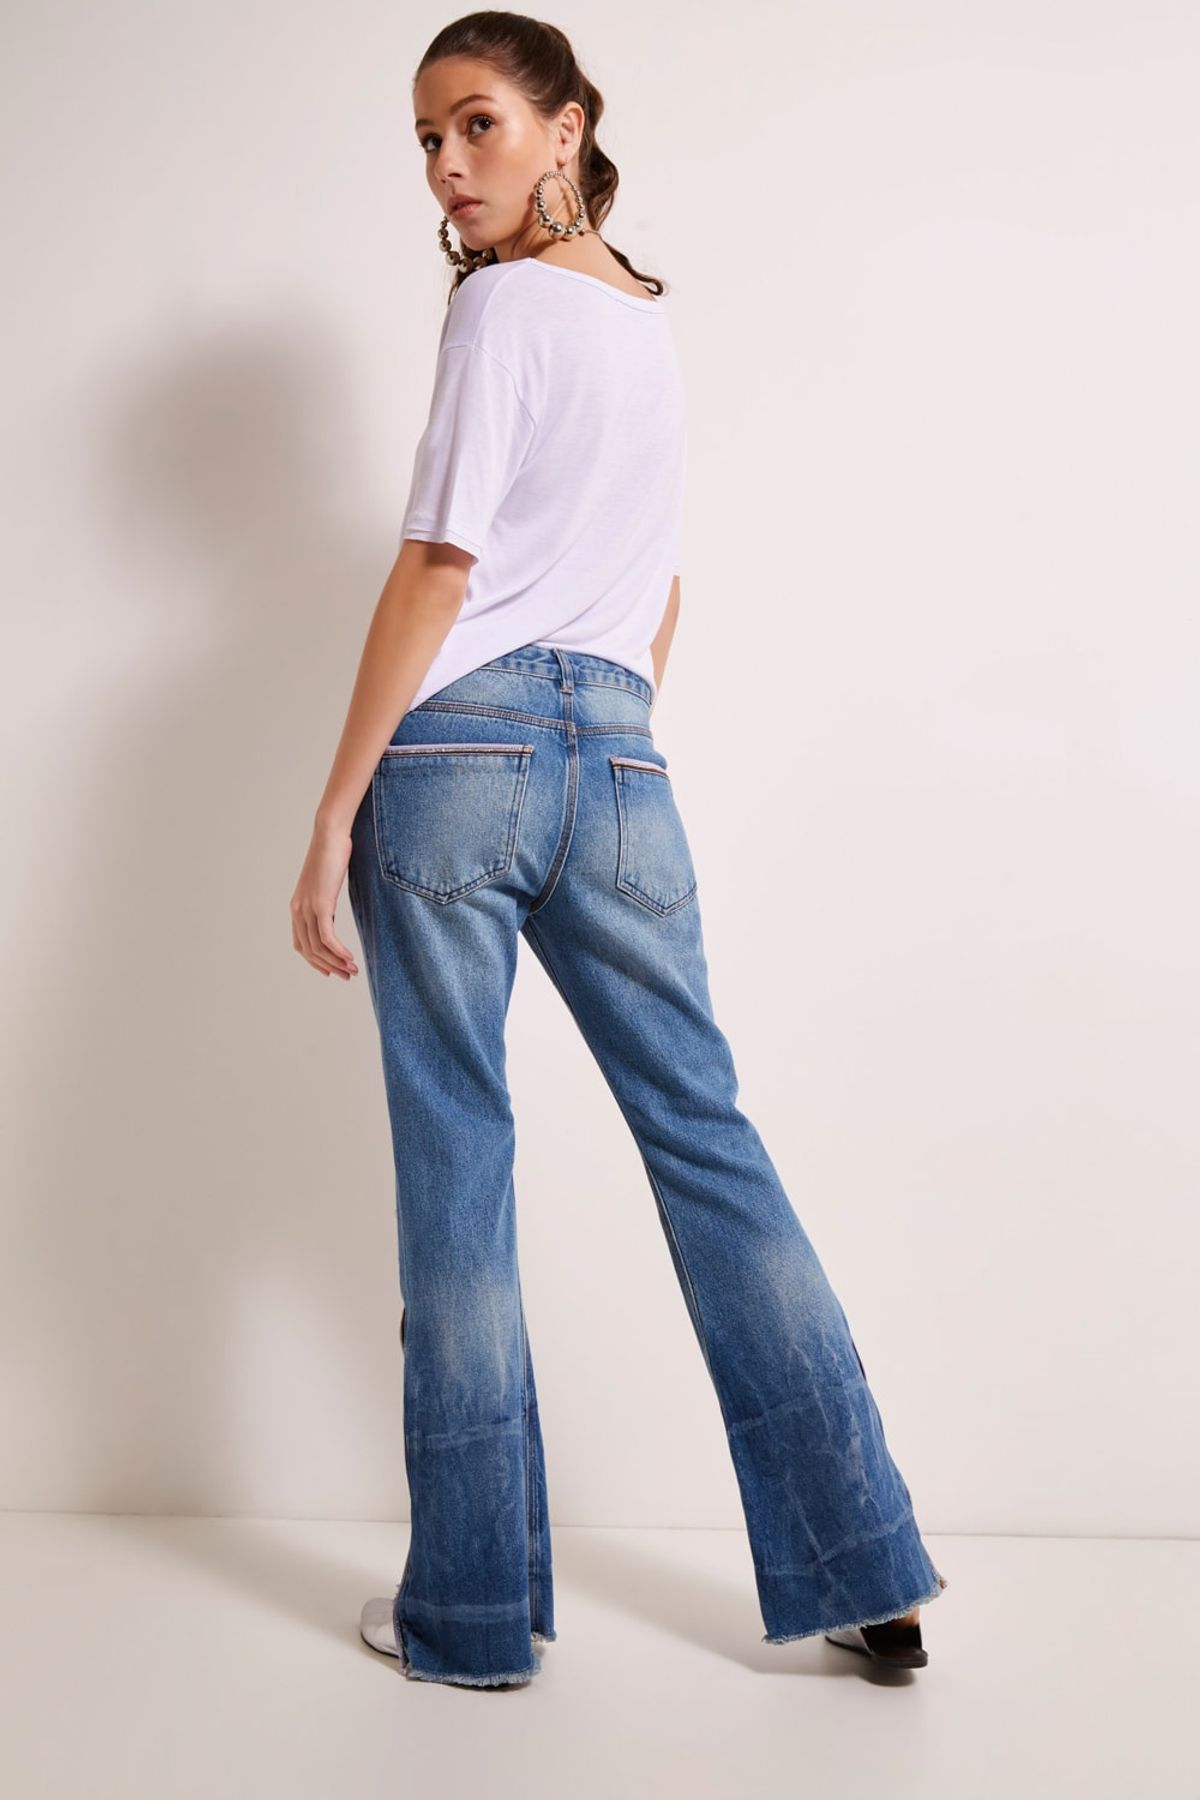 CALCA-JEANS-ZIPER-LATERAL-020188420057-OH-BOY